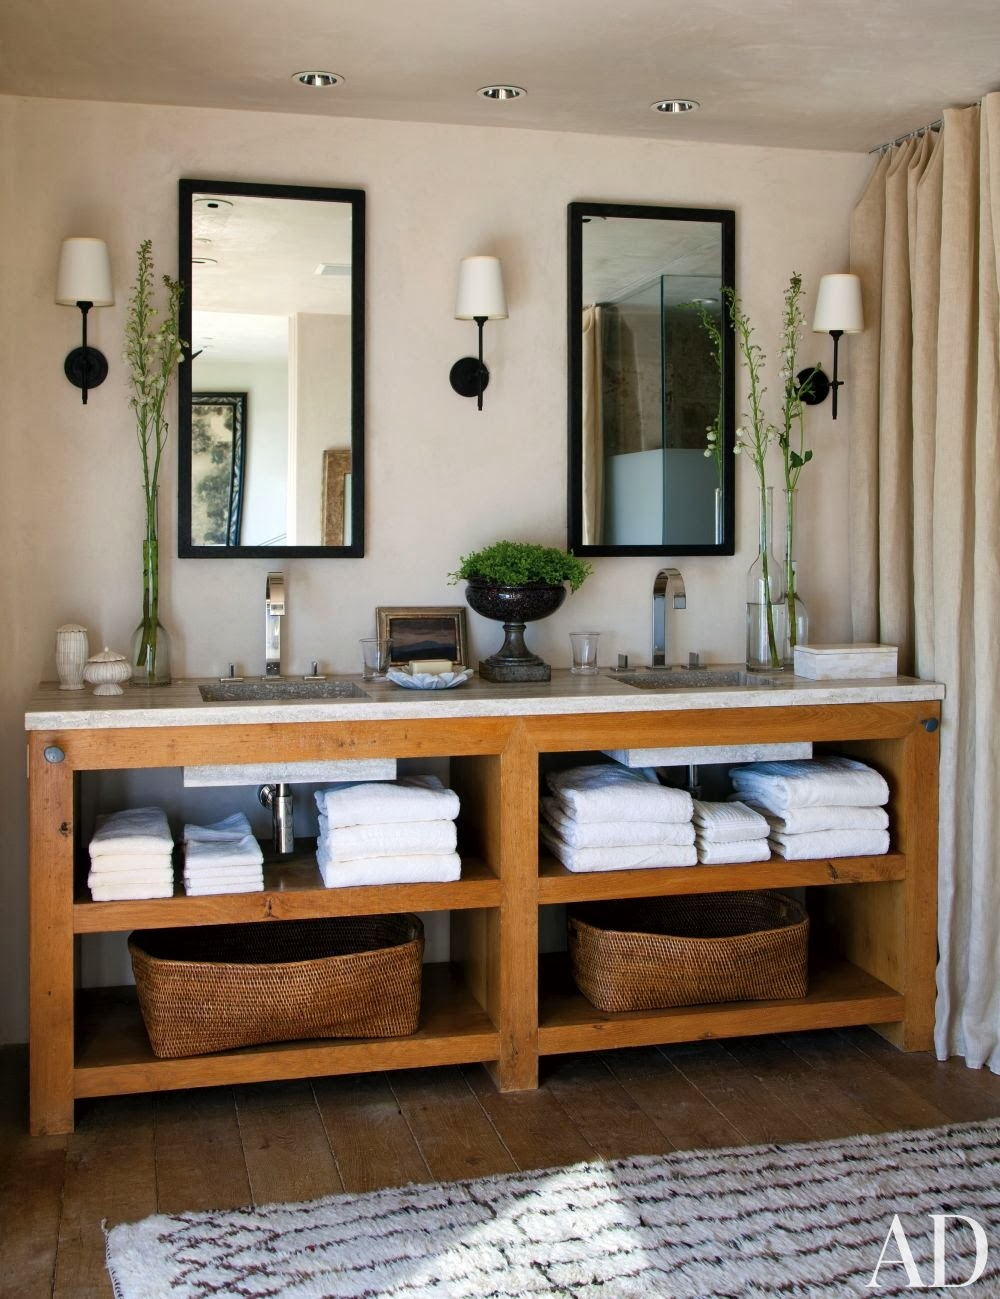 Refresheddesigns seven stunning modern rustic bathrooms for Bathroom images for home